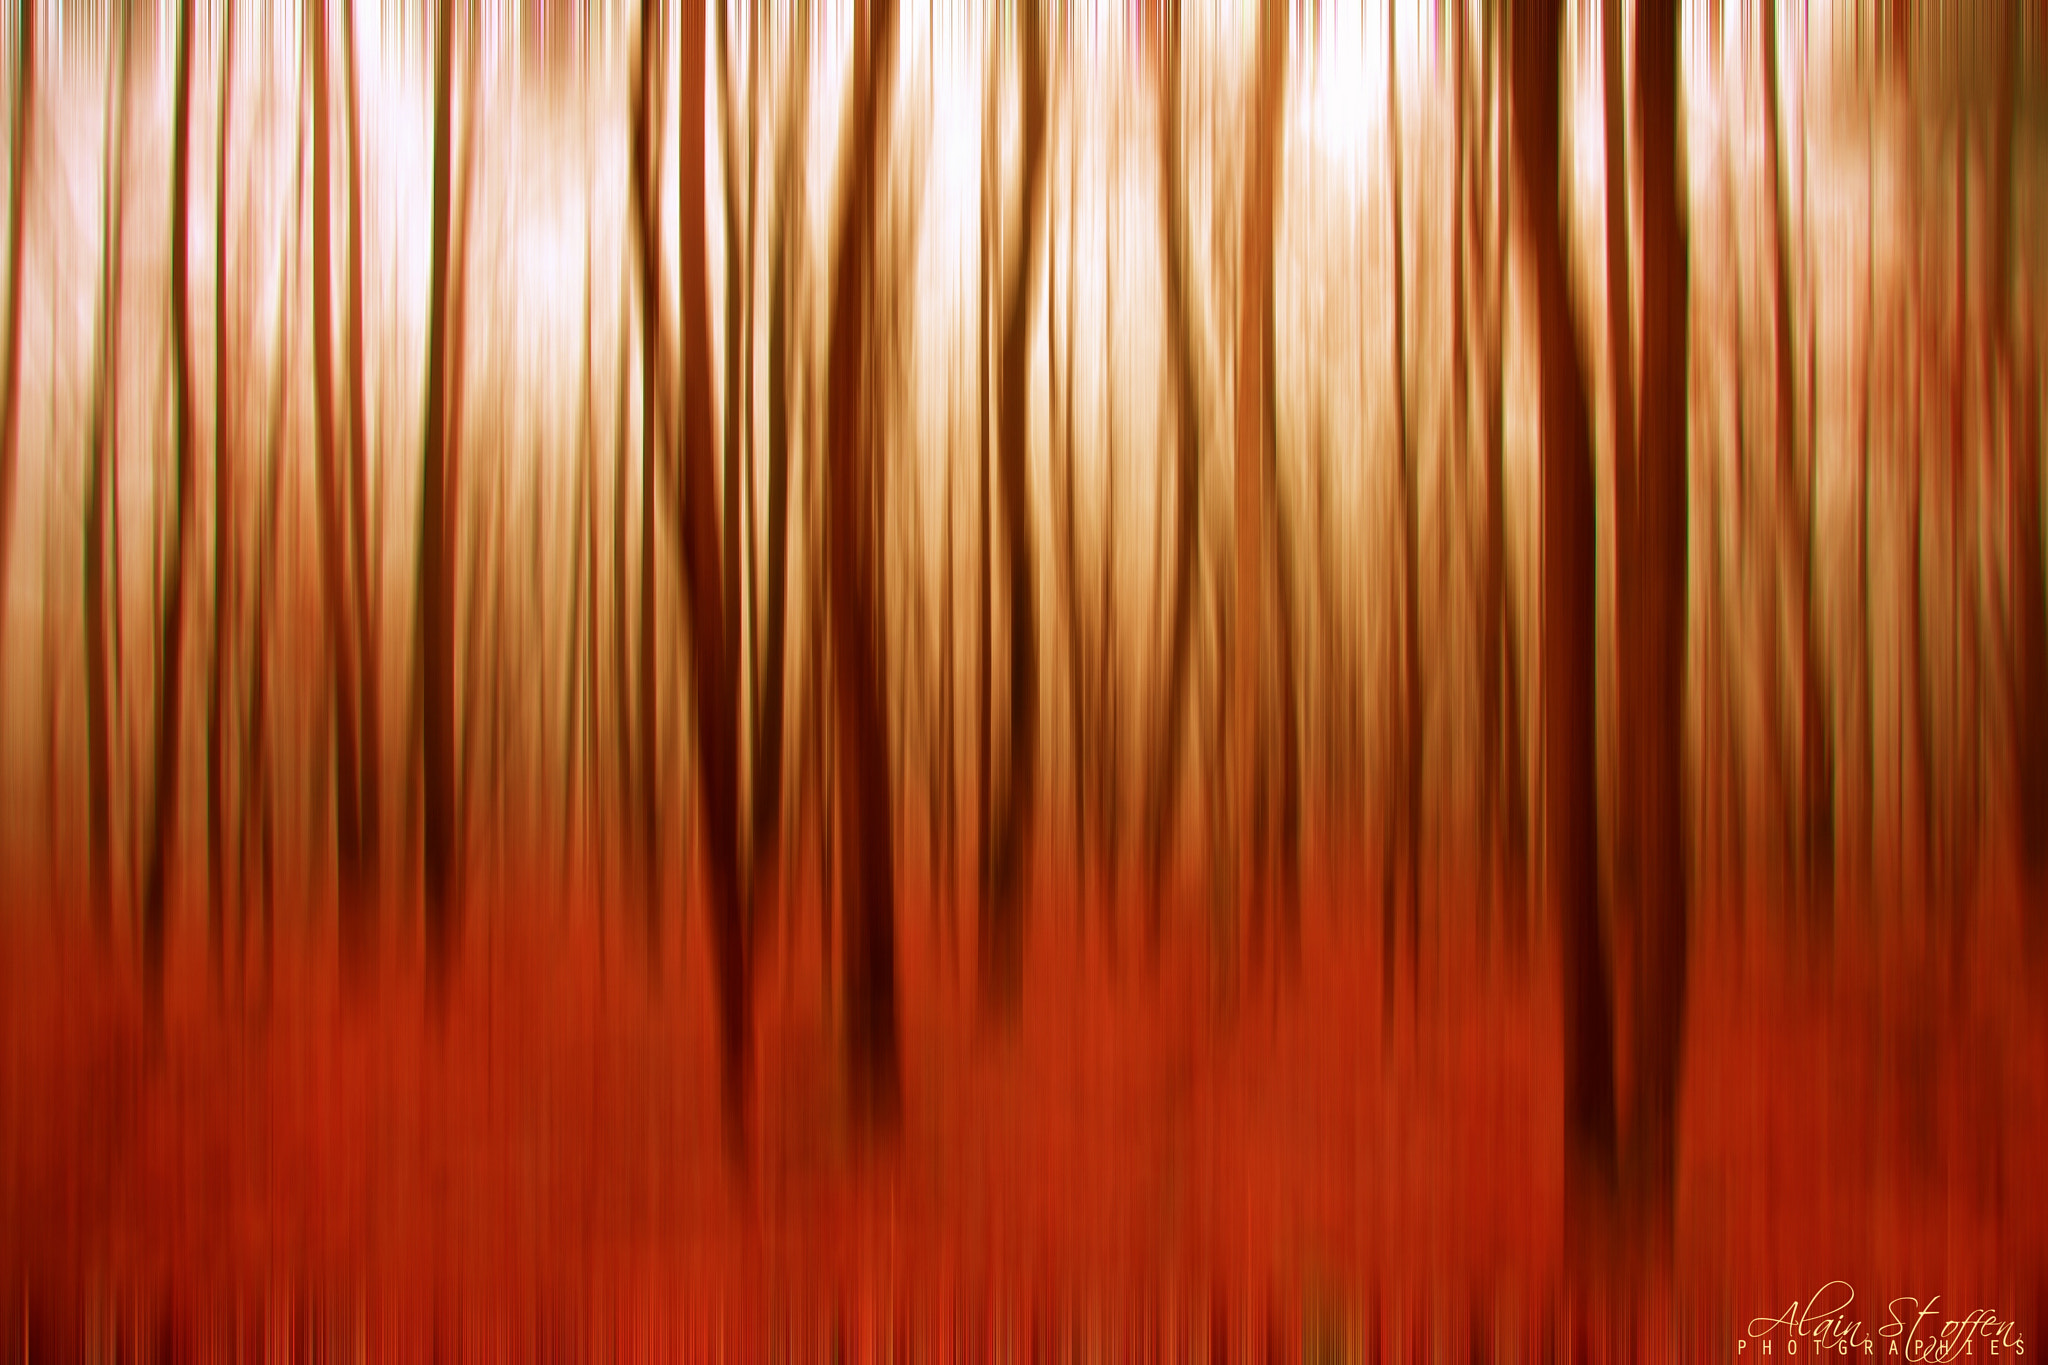 Photograph Autumn forest blur by Alain Stoffen on 500px